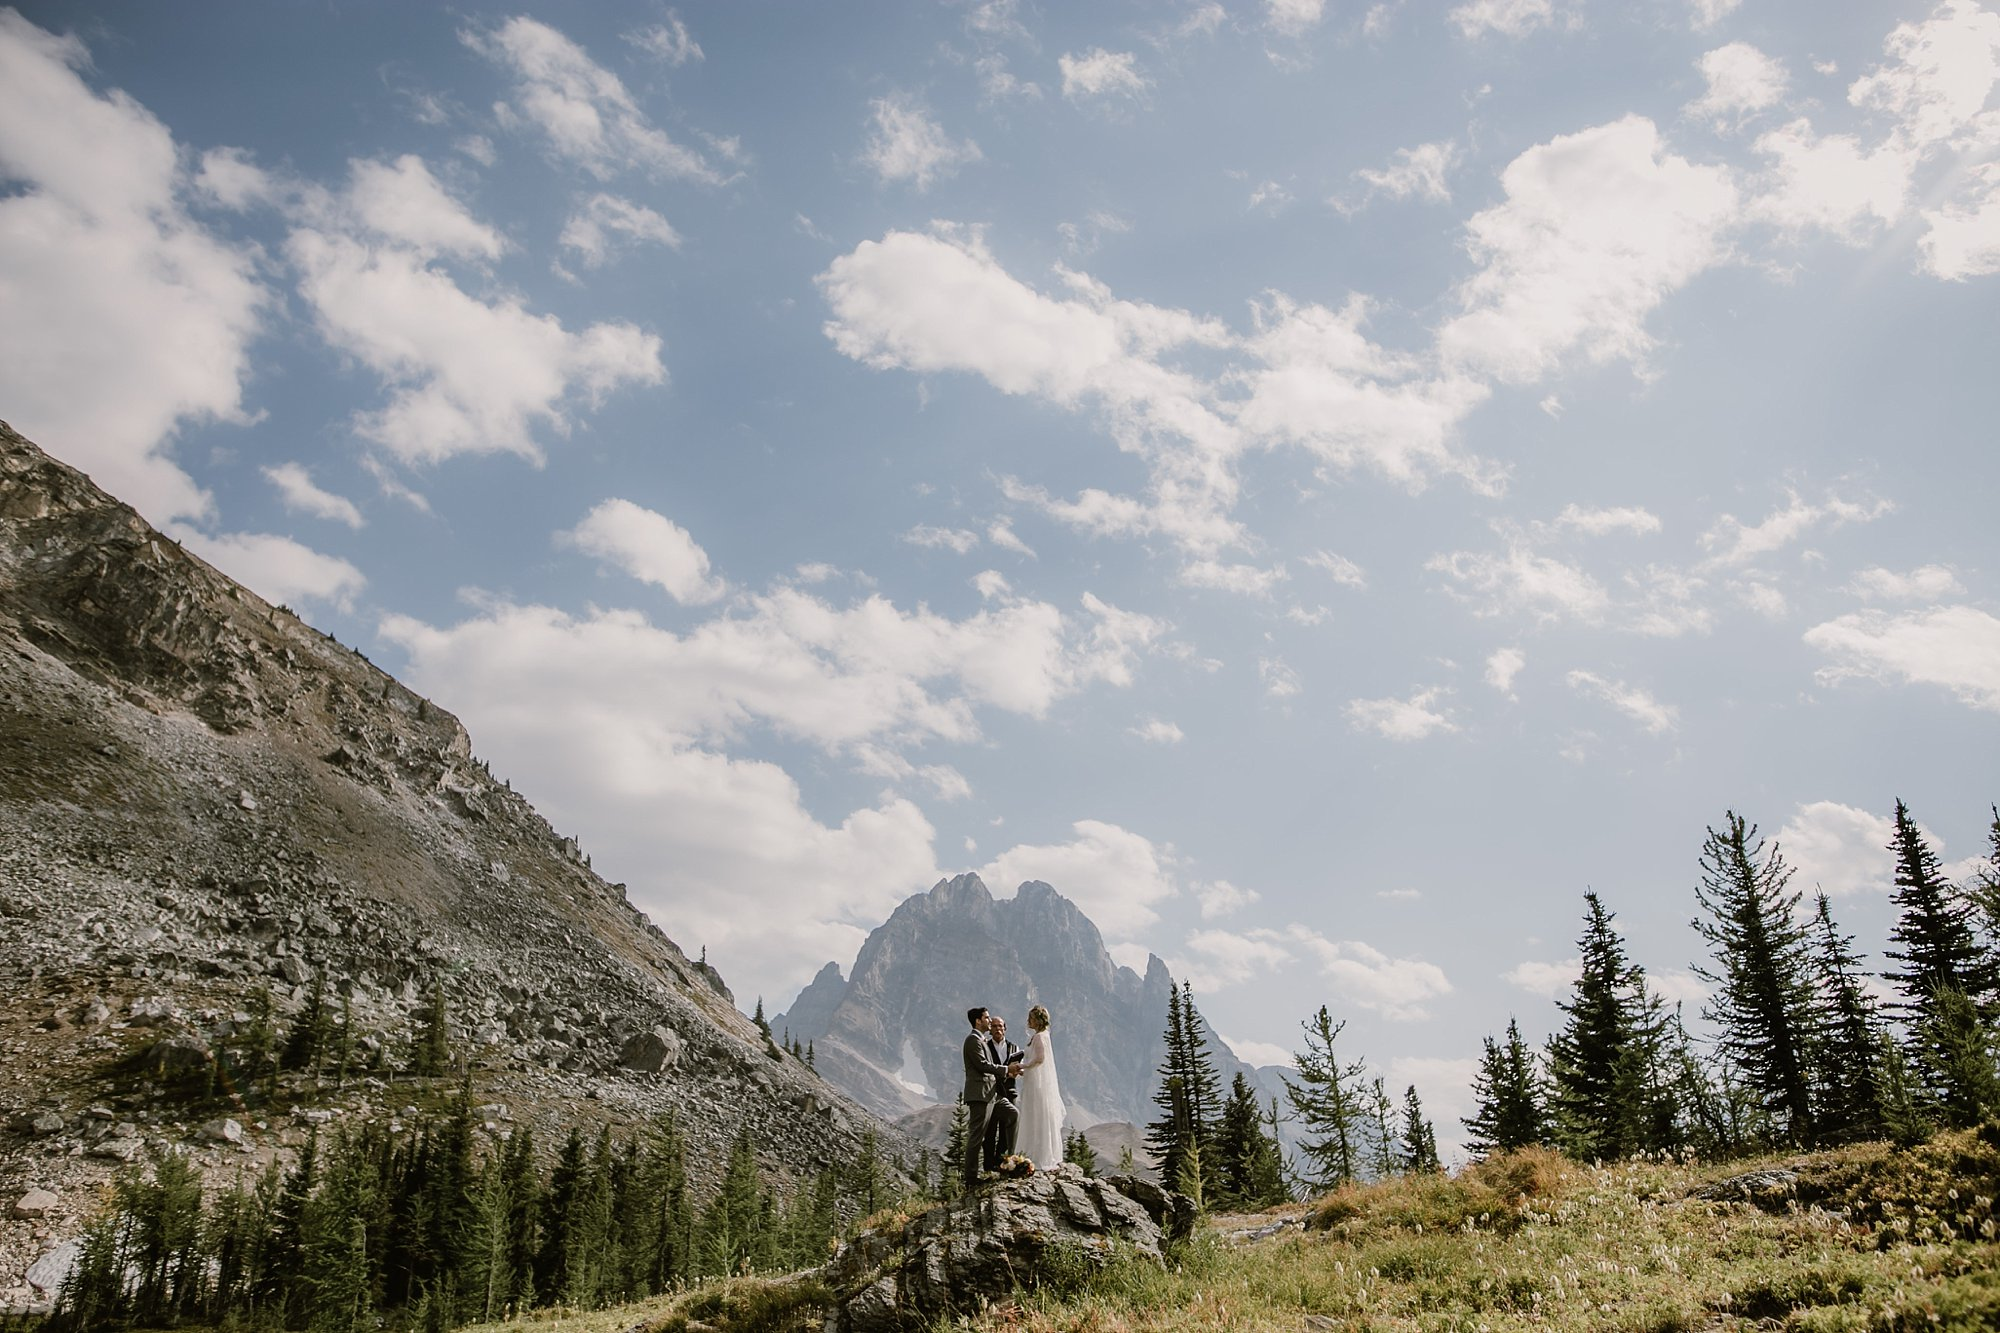 banff-canada-elopement-wedding_0022.jpg